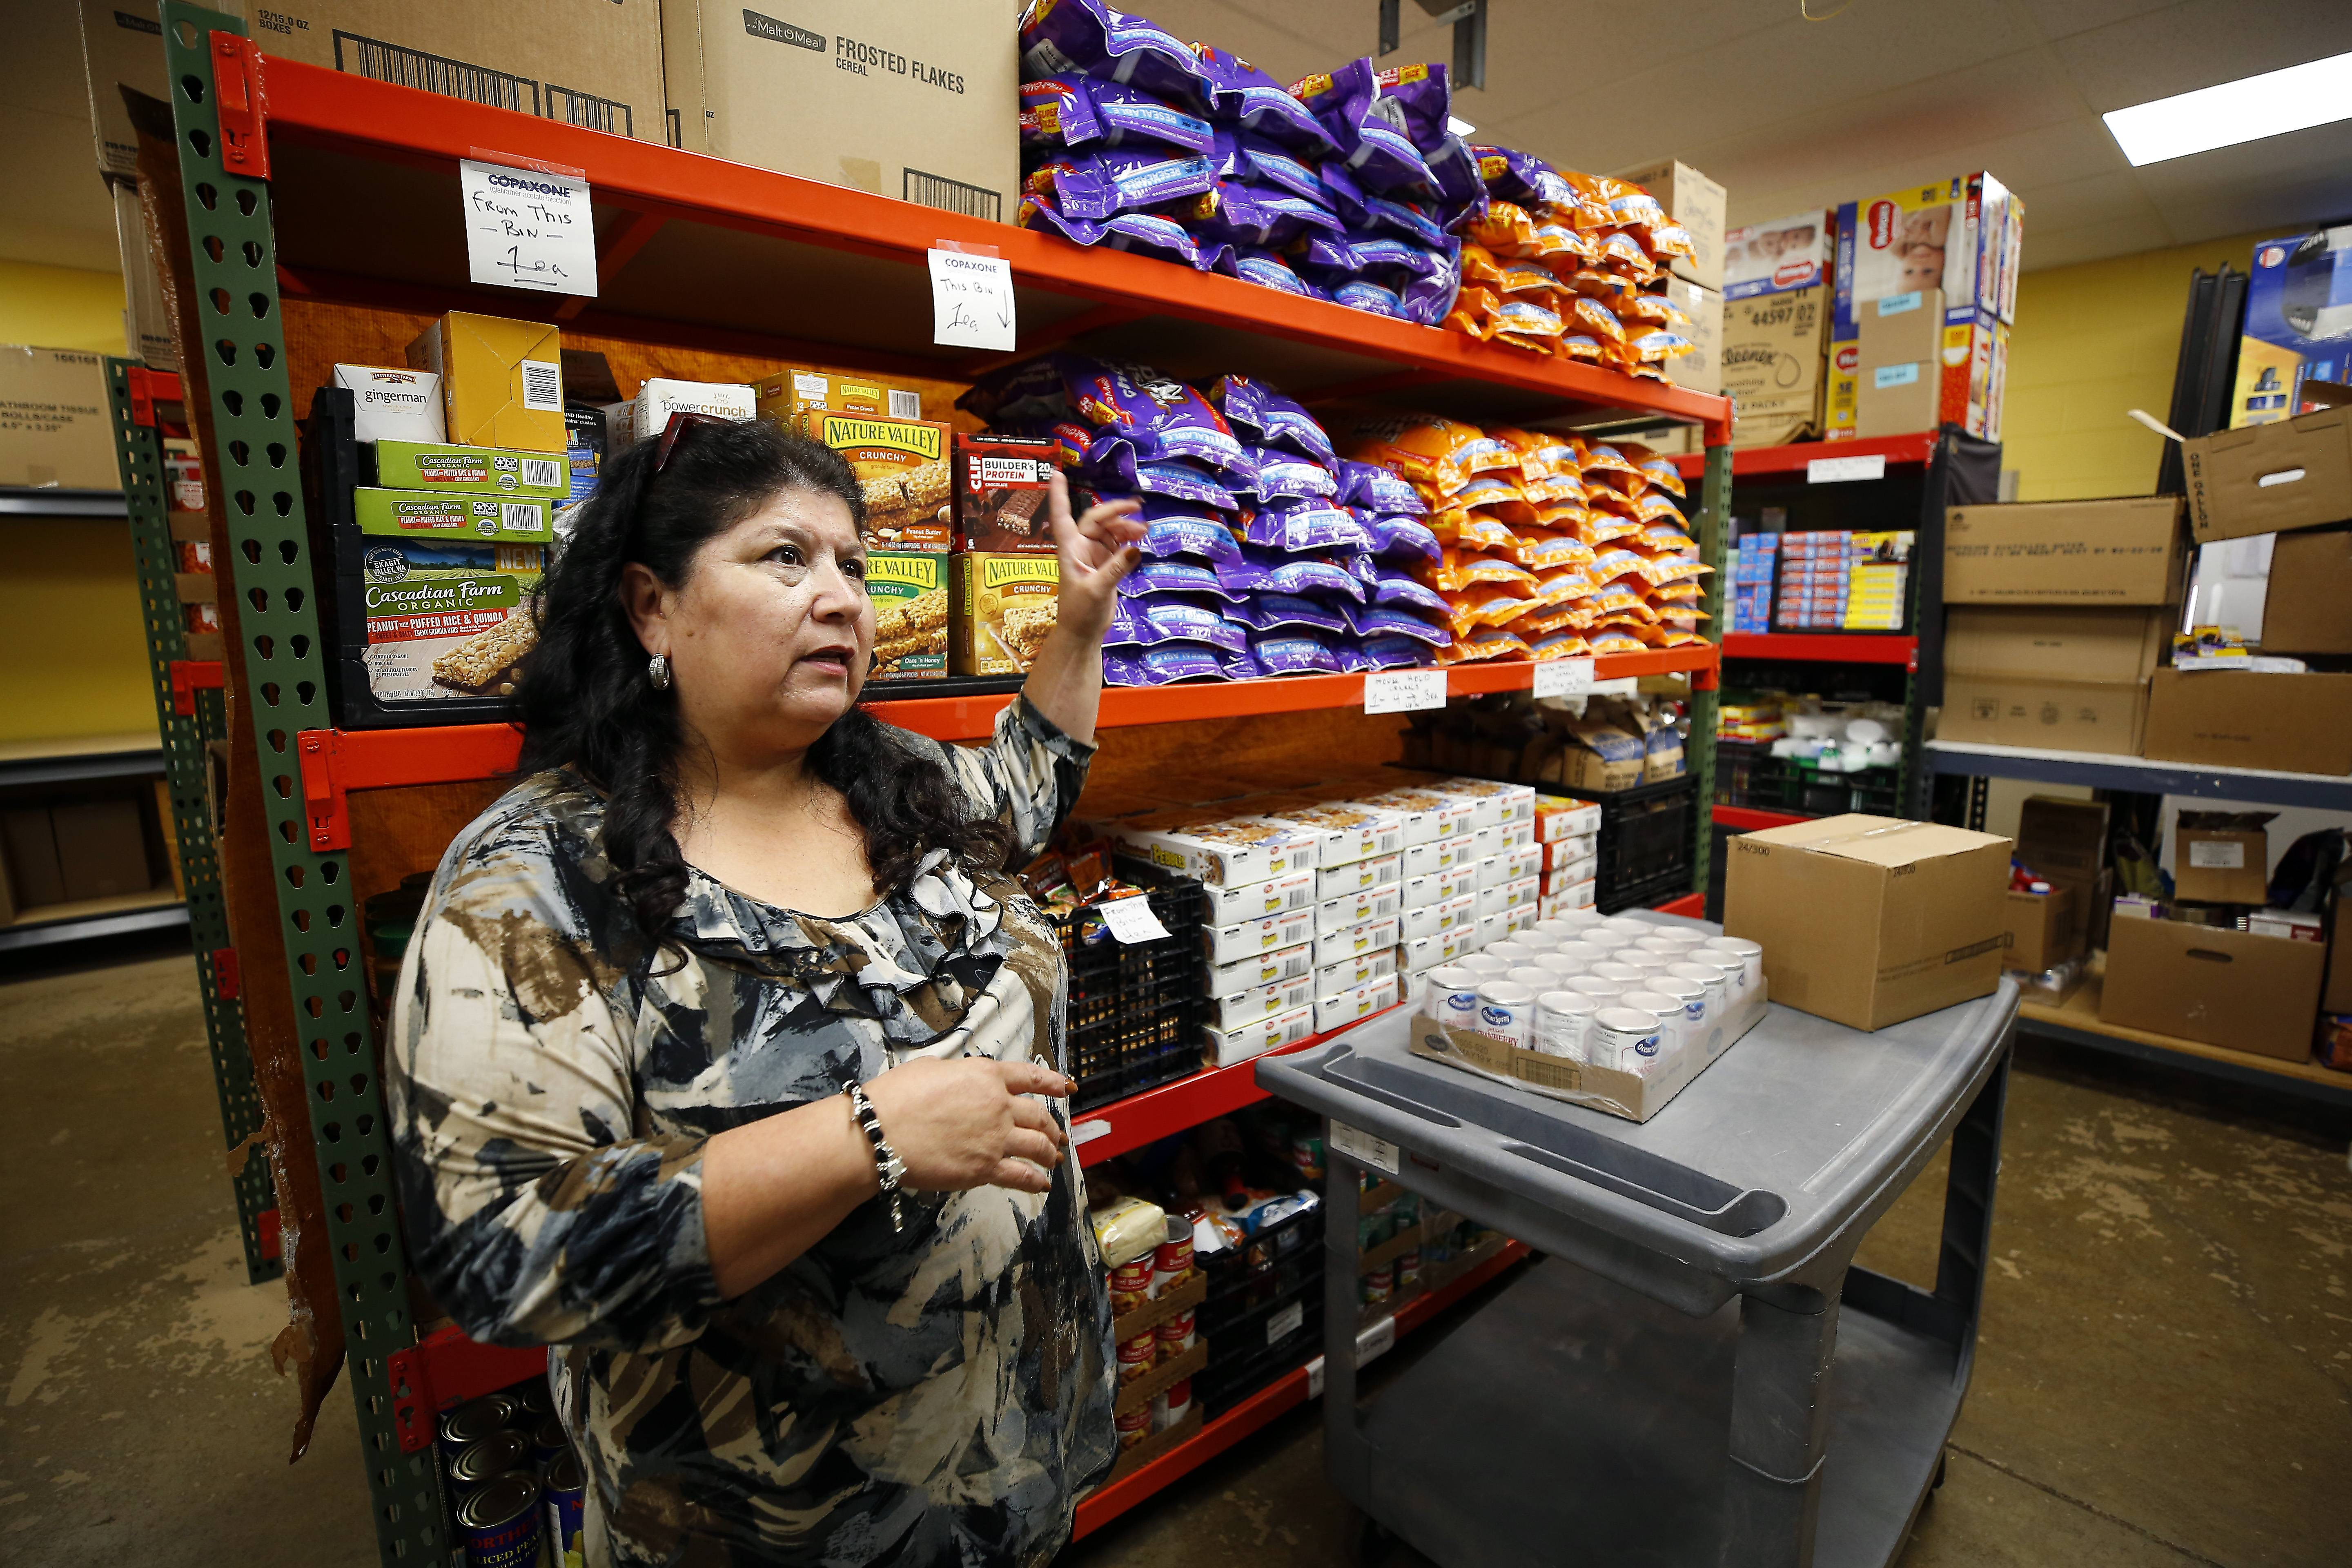 The Wayne Township food pantry is looking to expand with a 2,433-square-foot addition. Juanita Martinez is the director of the pantry and the township's general assistance office.